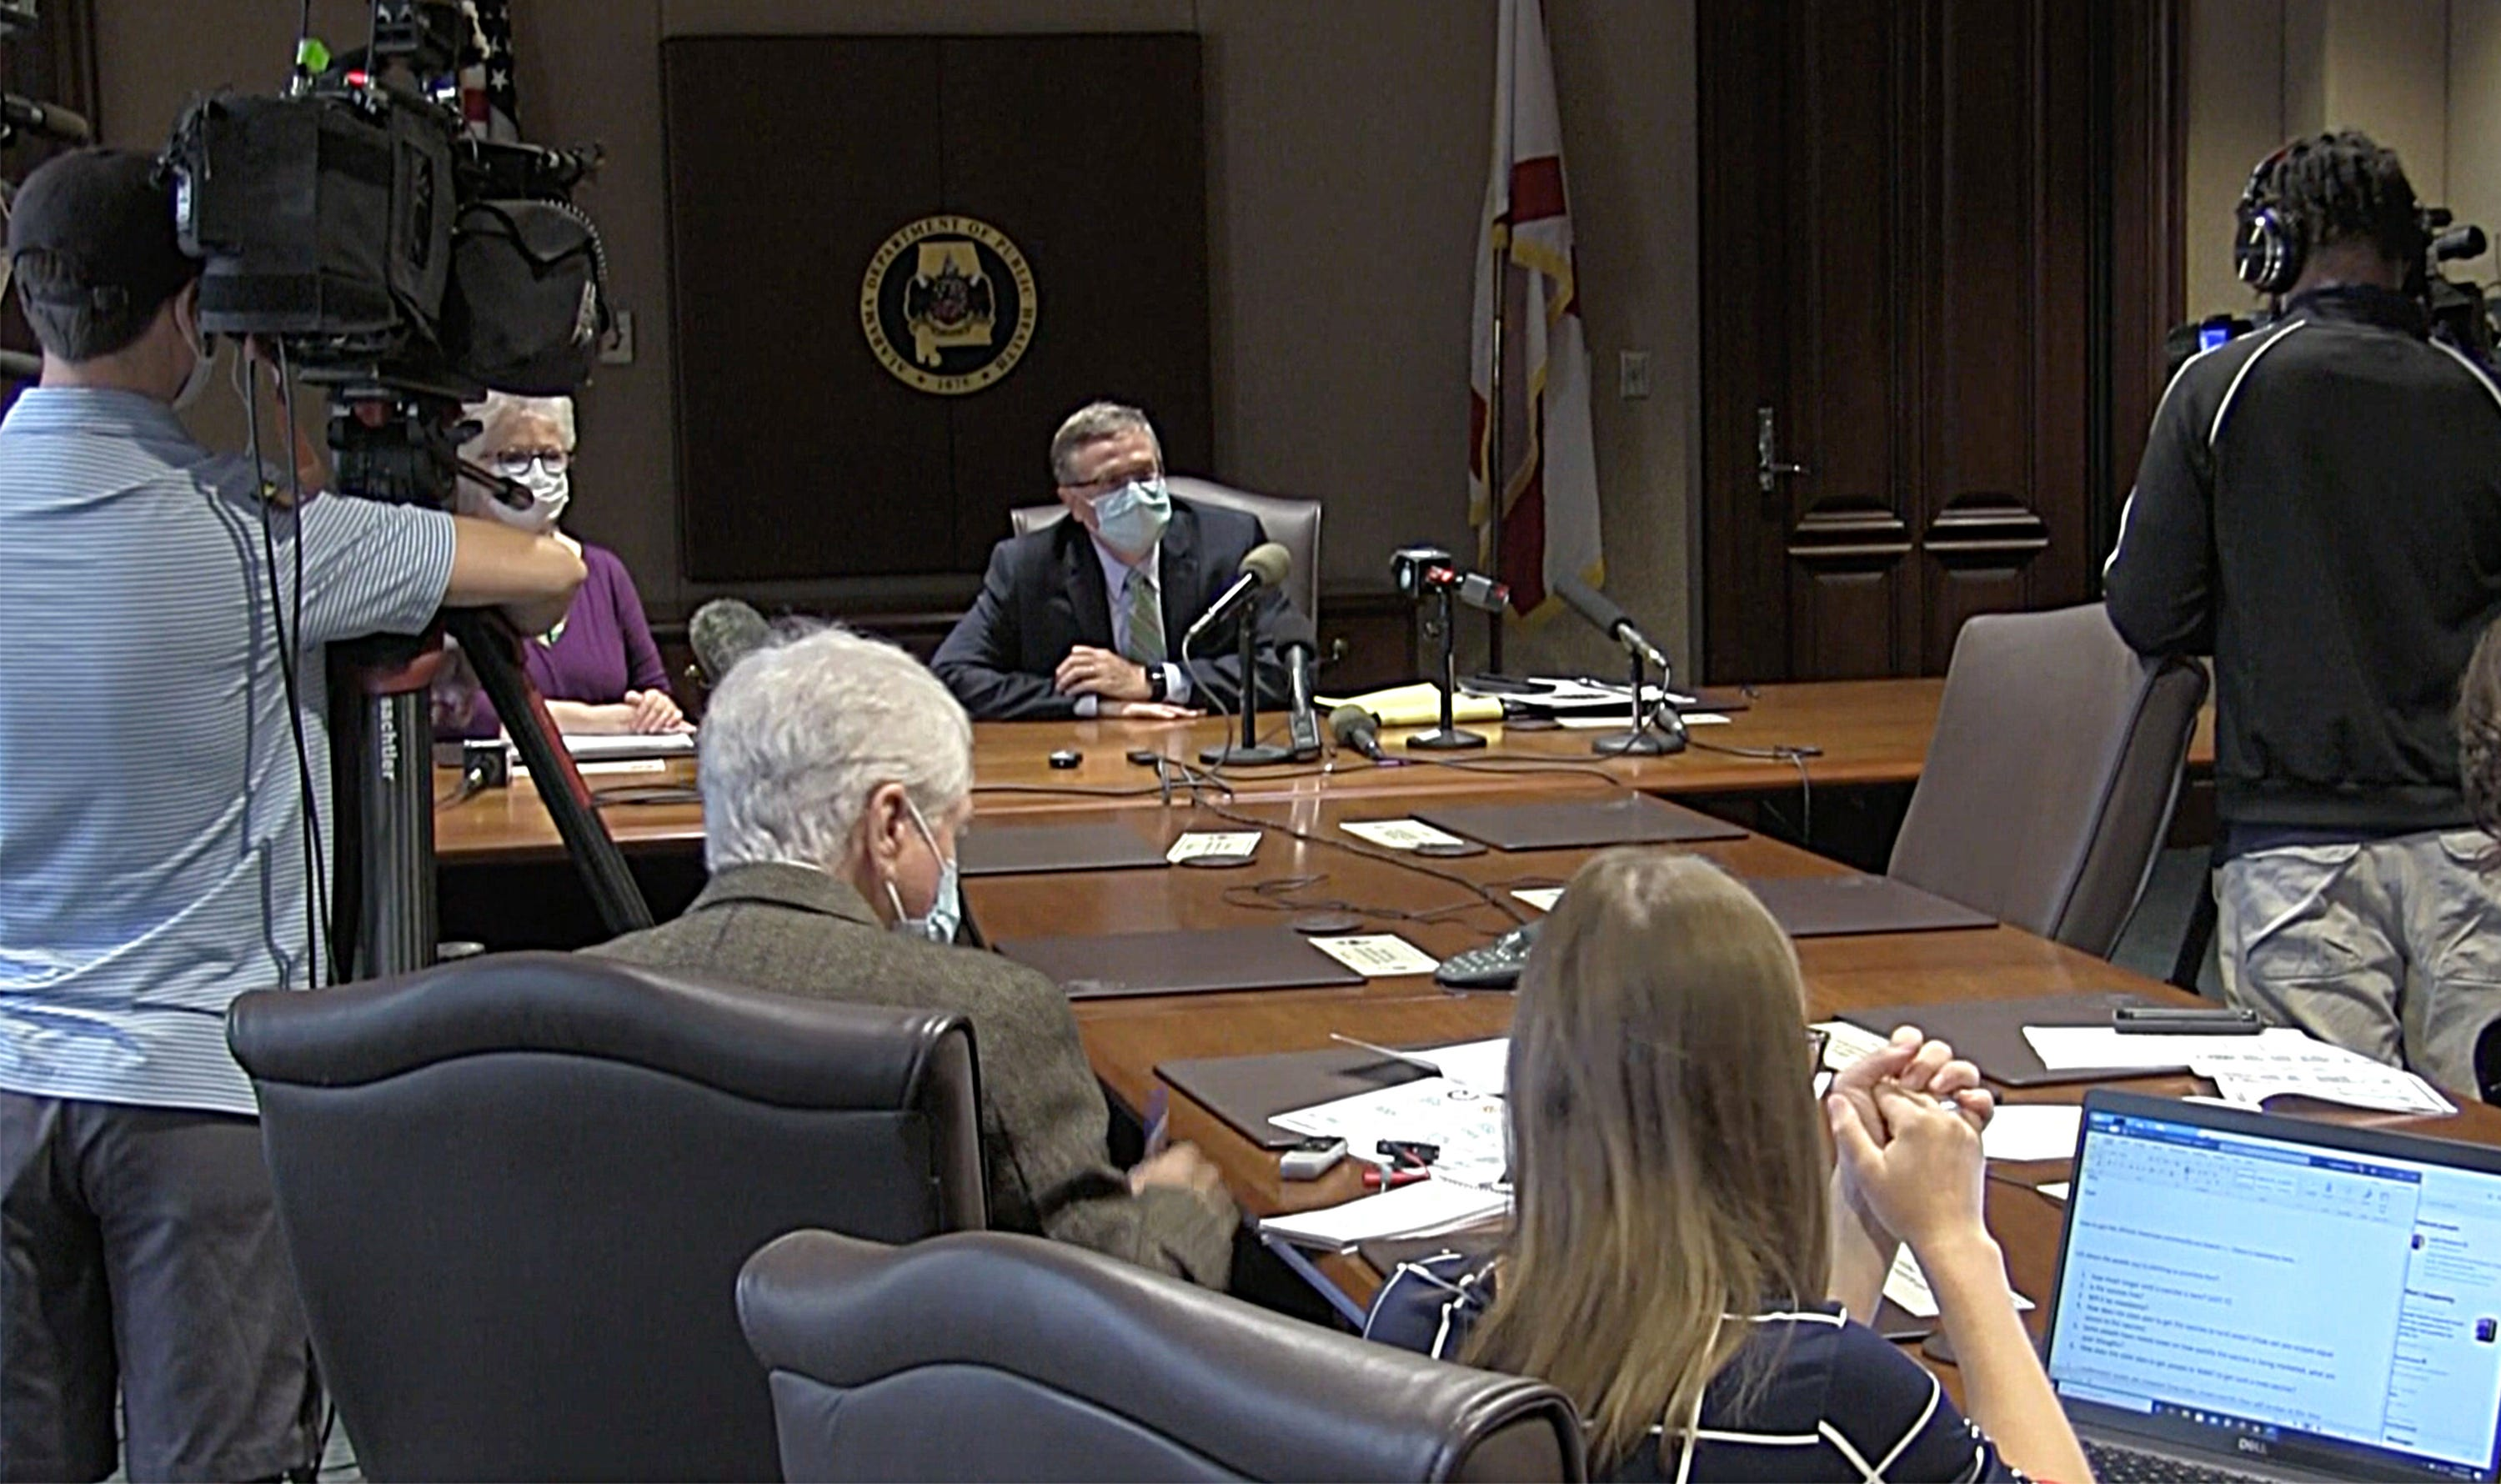 State health officer Dr. Scott Harris leads a discussion about of COVID-19 vaccinations at the Alabama Department of Public Health in Montgomery on Thursday, Oct. 15, 2020.